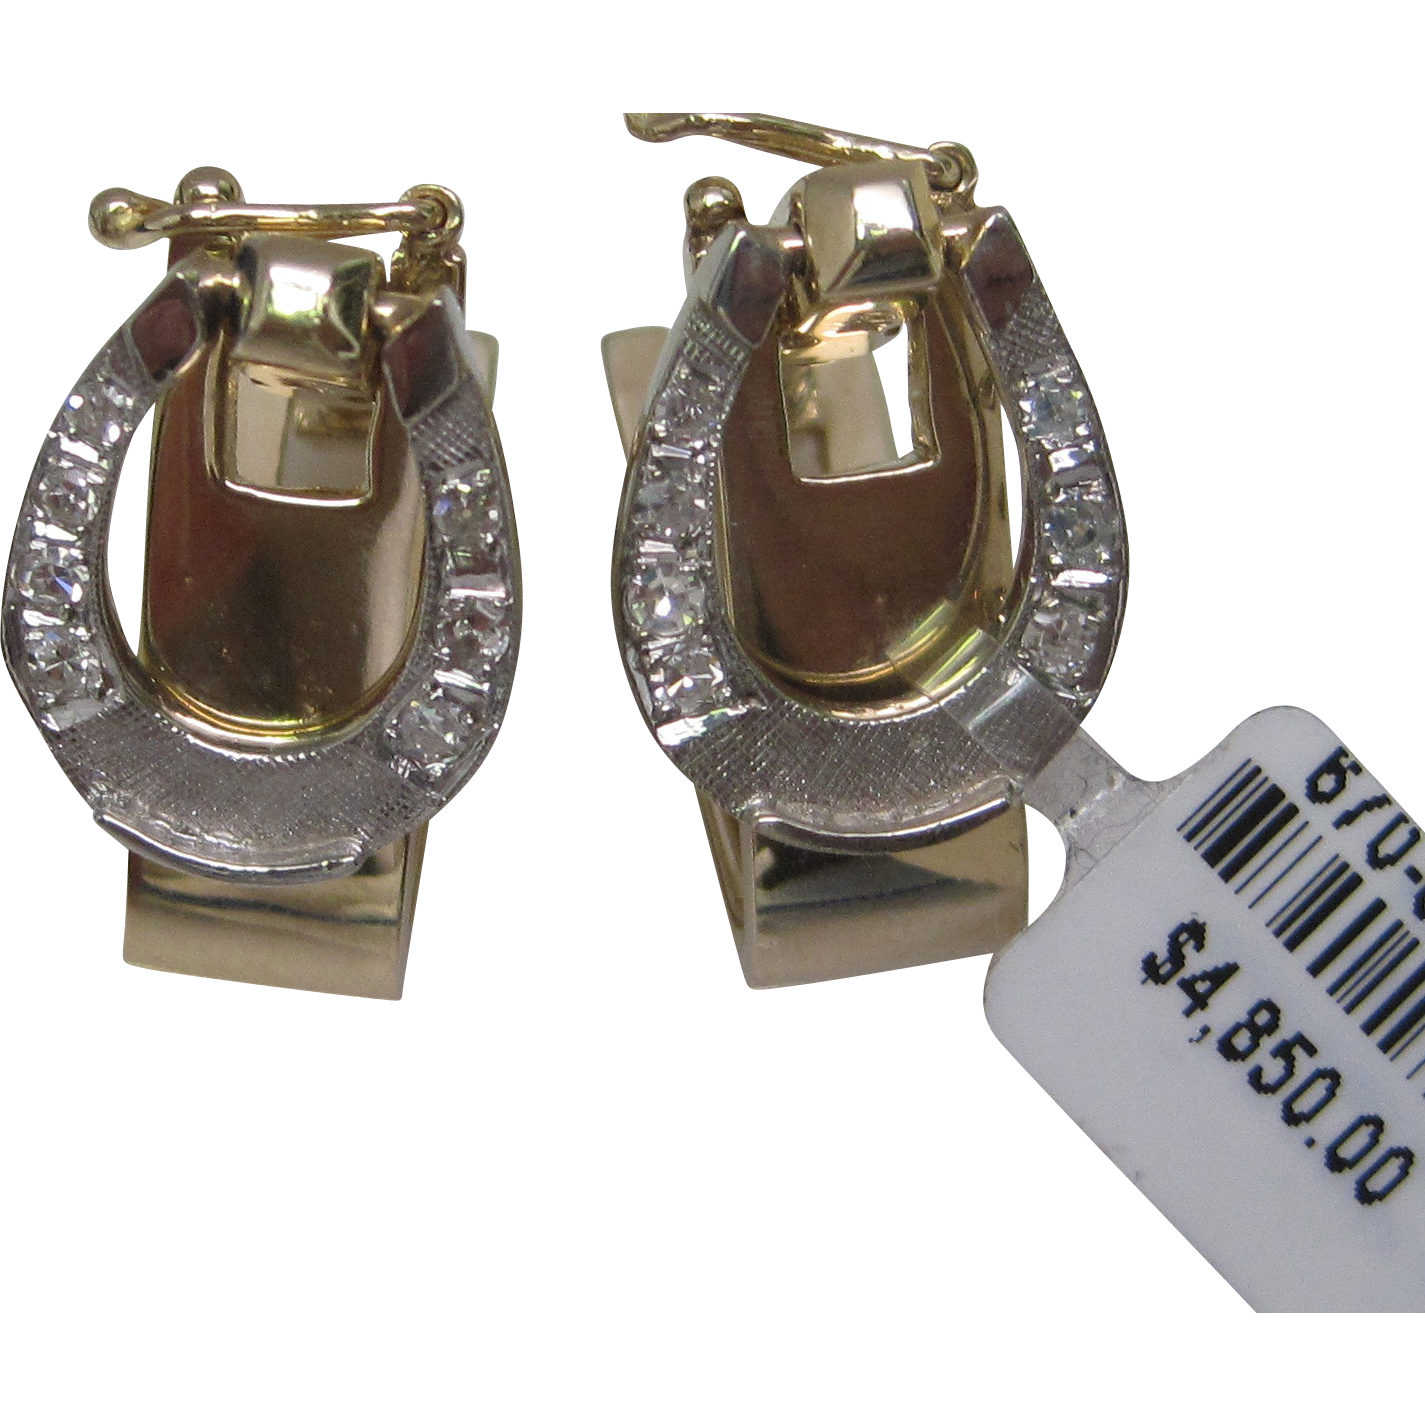 14k yellow and white gold horseshoe diamond cufflinks from